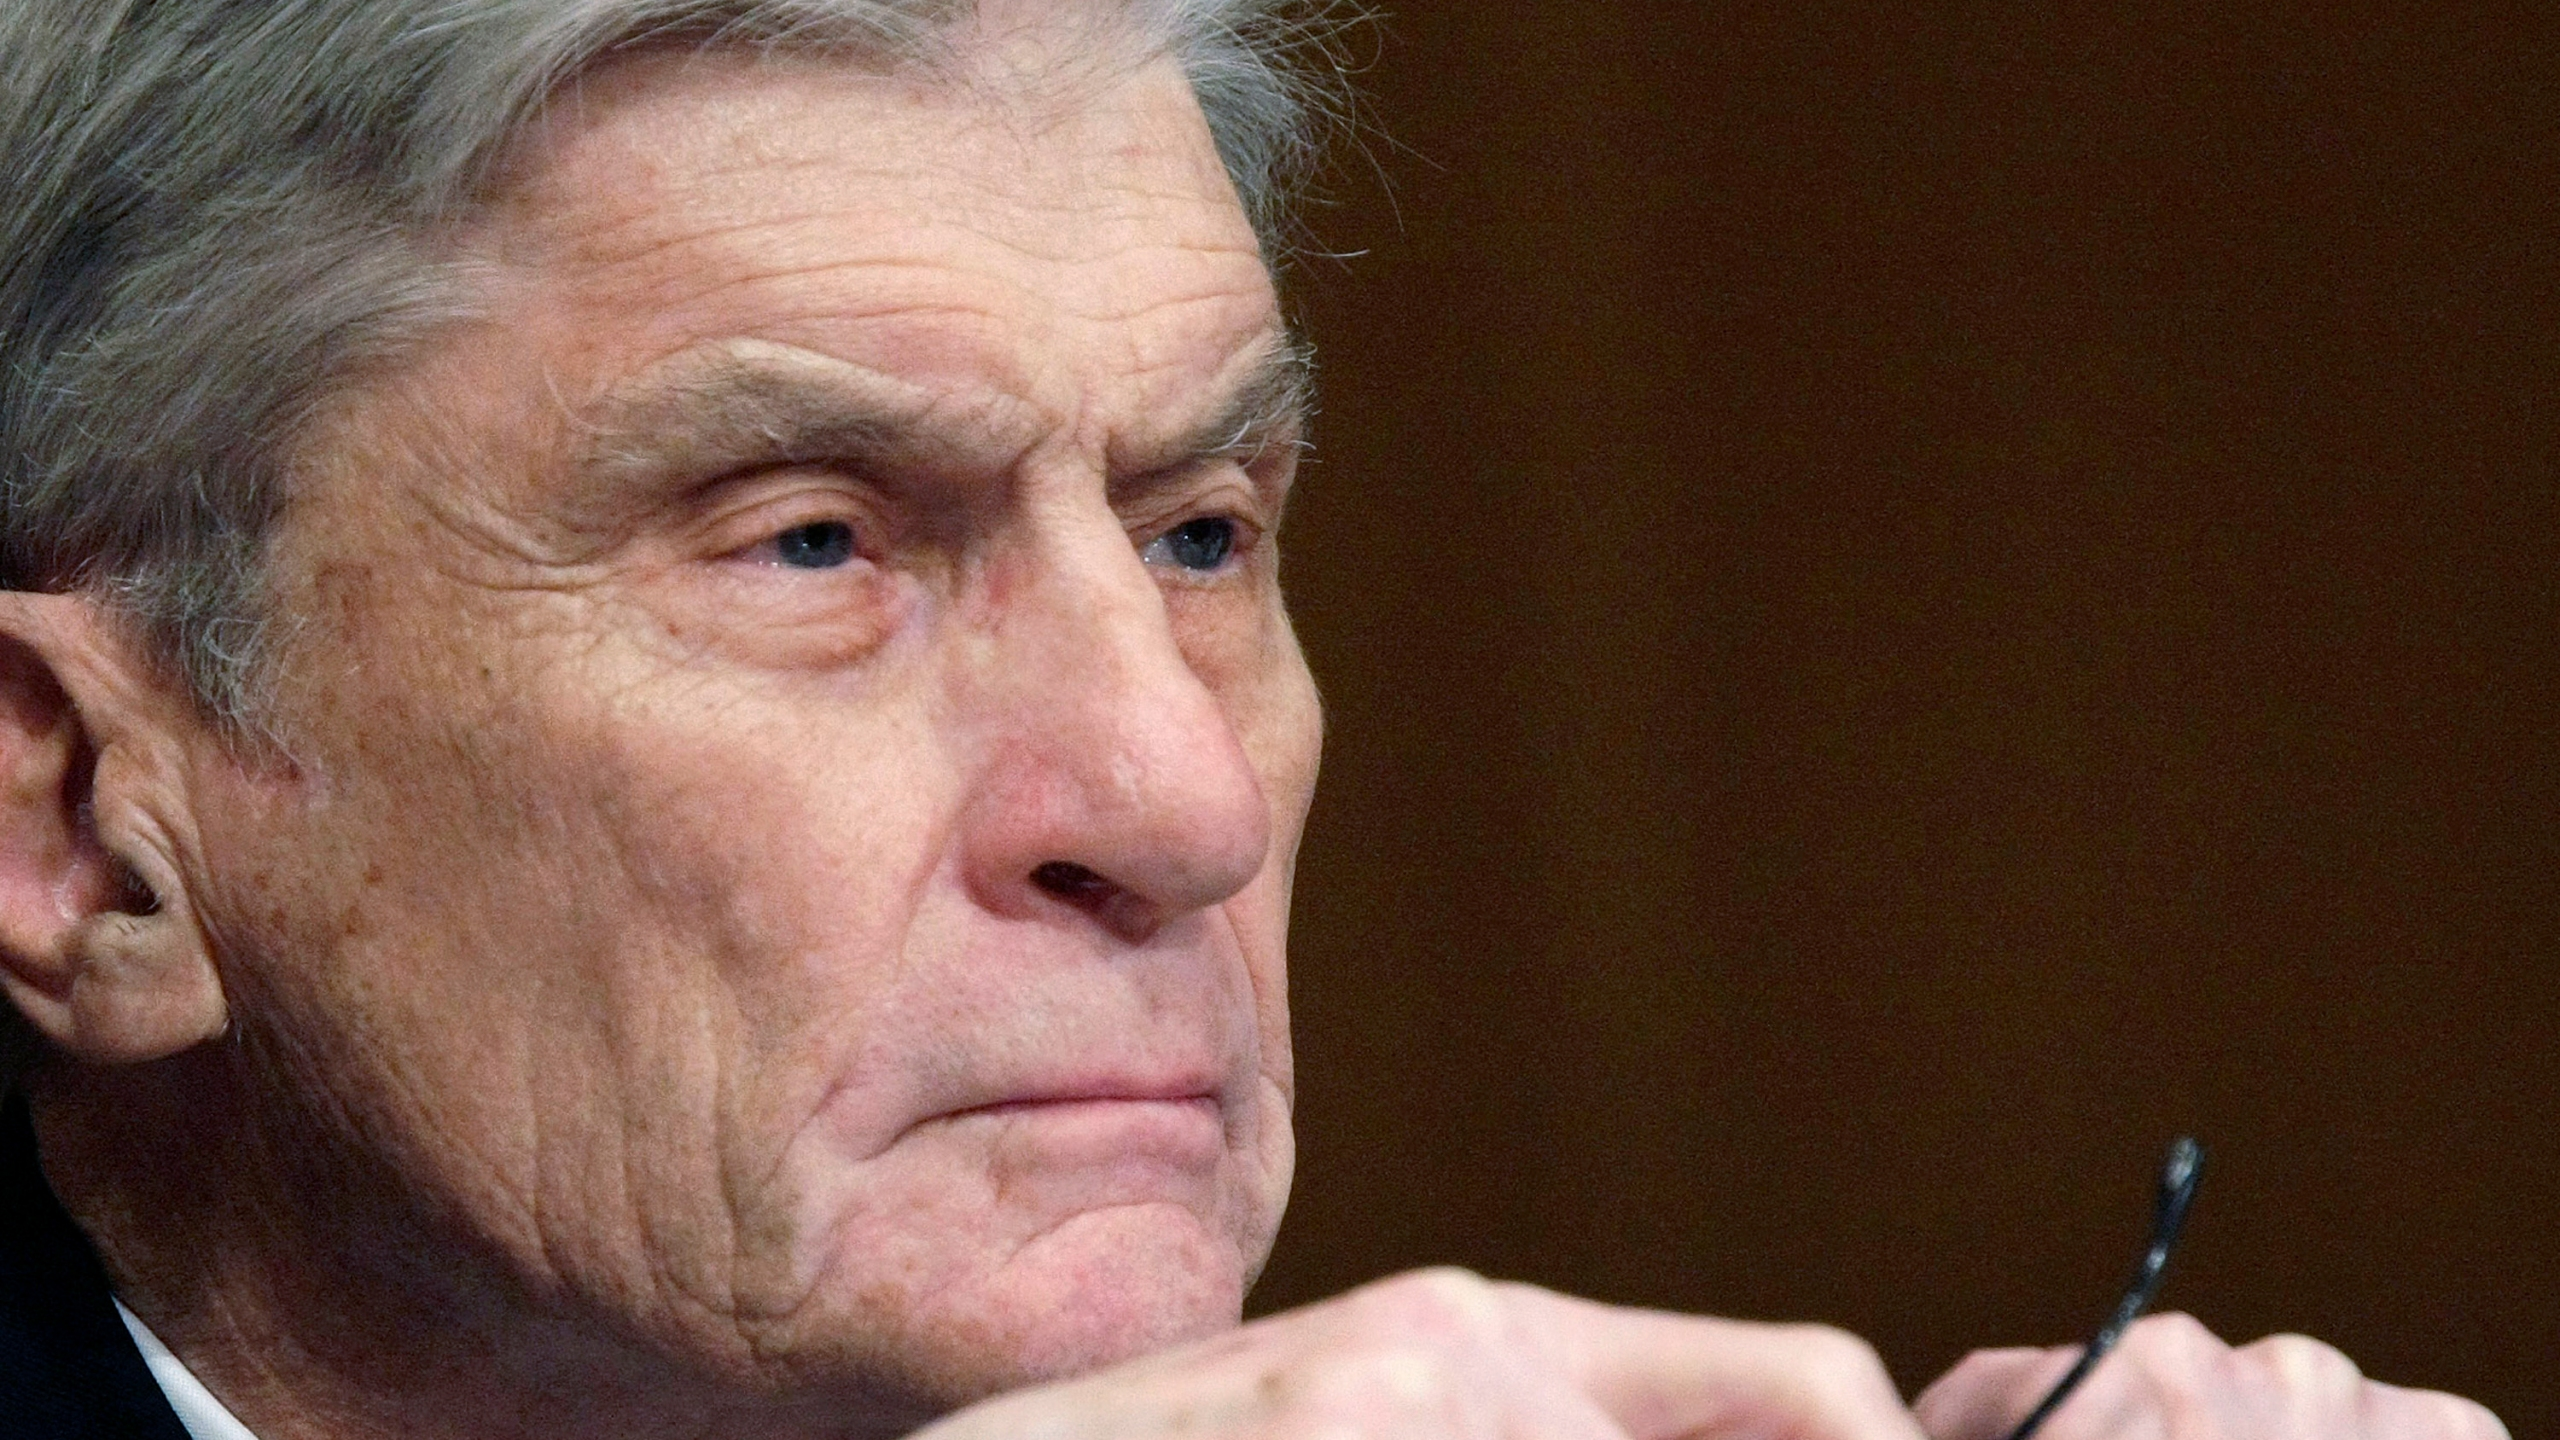 In this April 8, 2008 file photo, then Senate Armed Services Committee member Sen. John Warner, R-Va., listens to testimony on Capitol Hill in Washington. Warner, a former Navy secretary and one of the Senate's most influential military experts, has died at 94. (AP Photo/Pablo Martinez Monsivais, File)